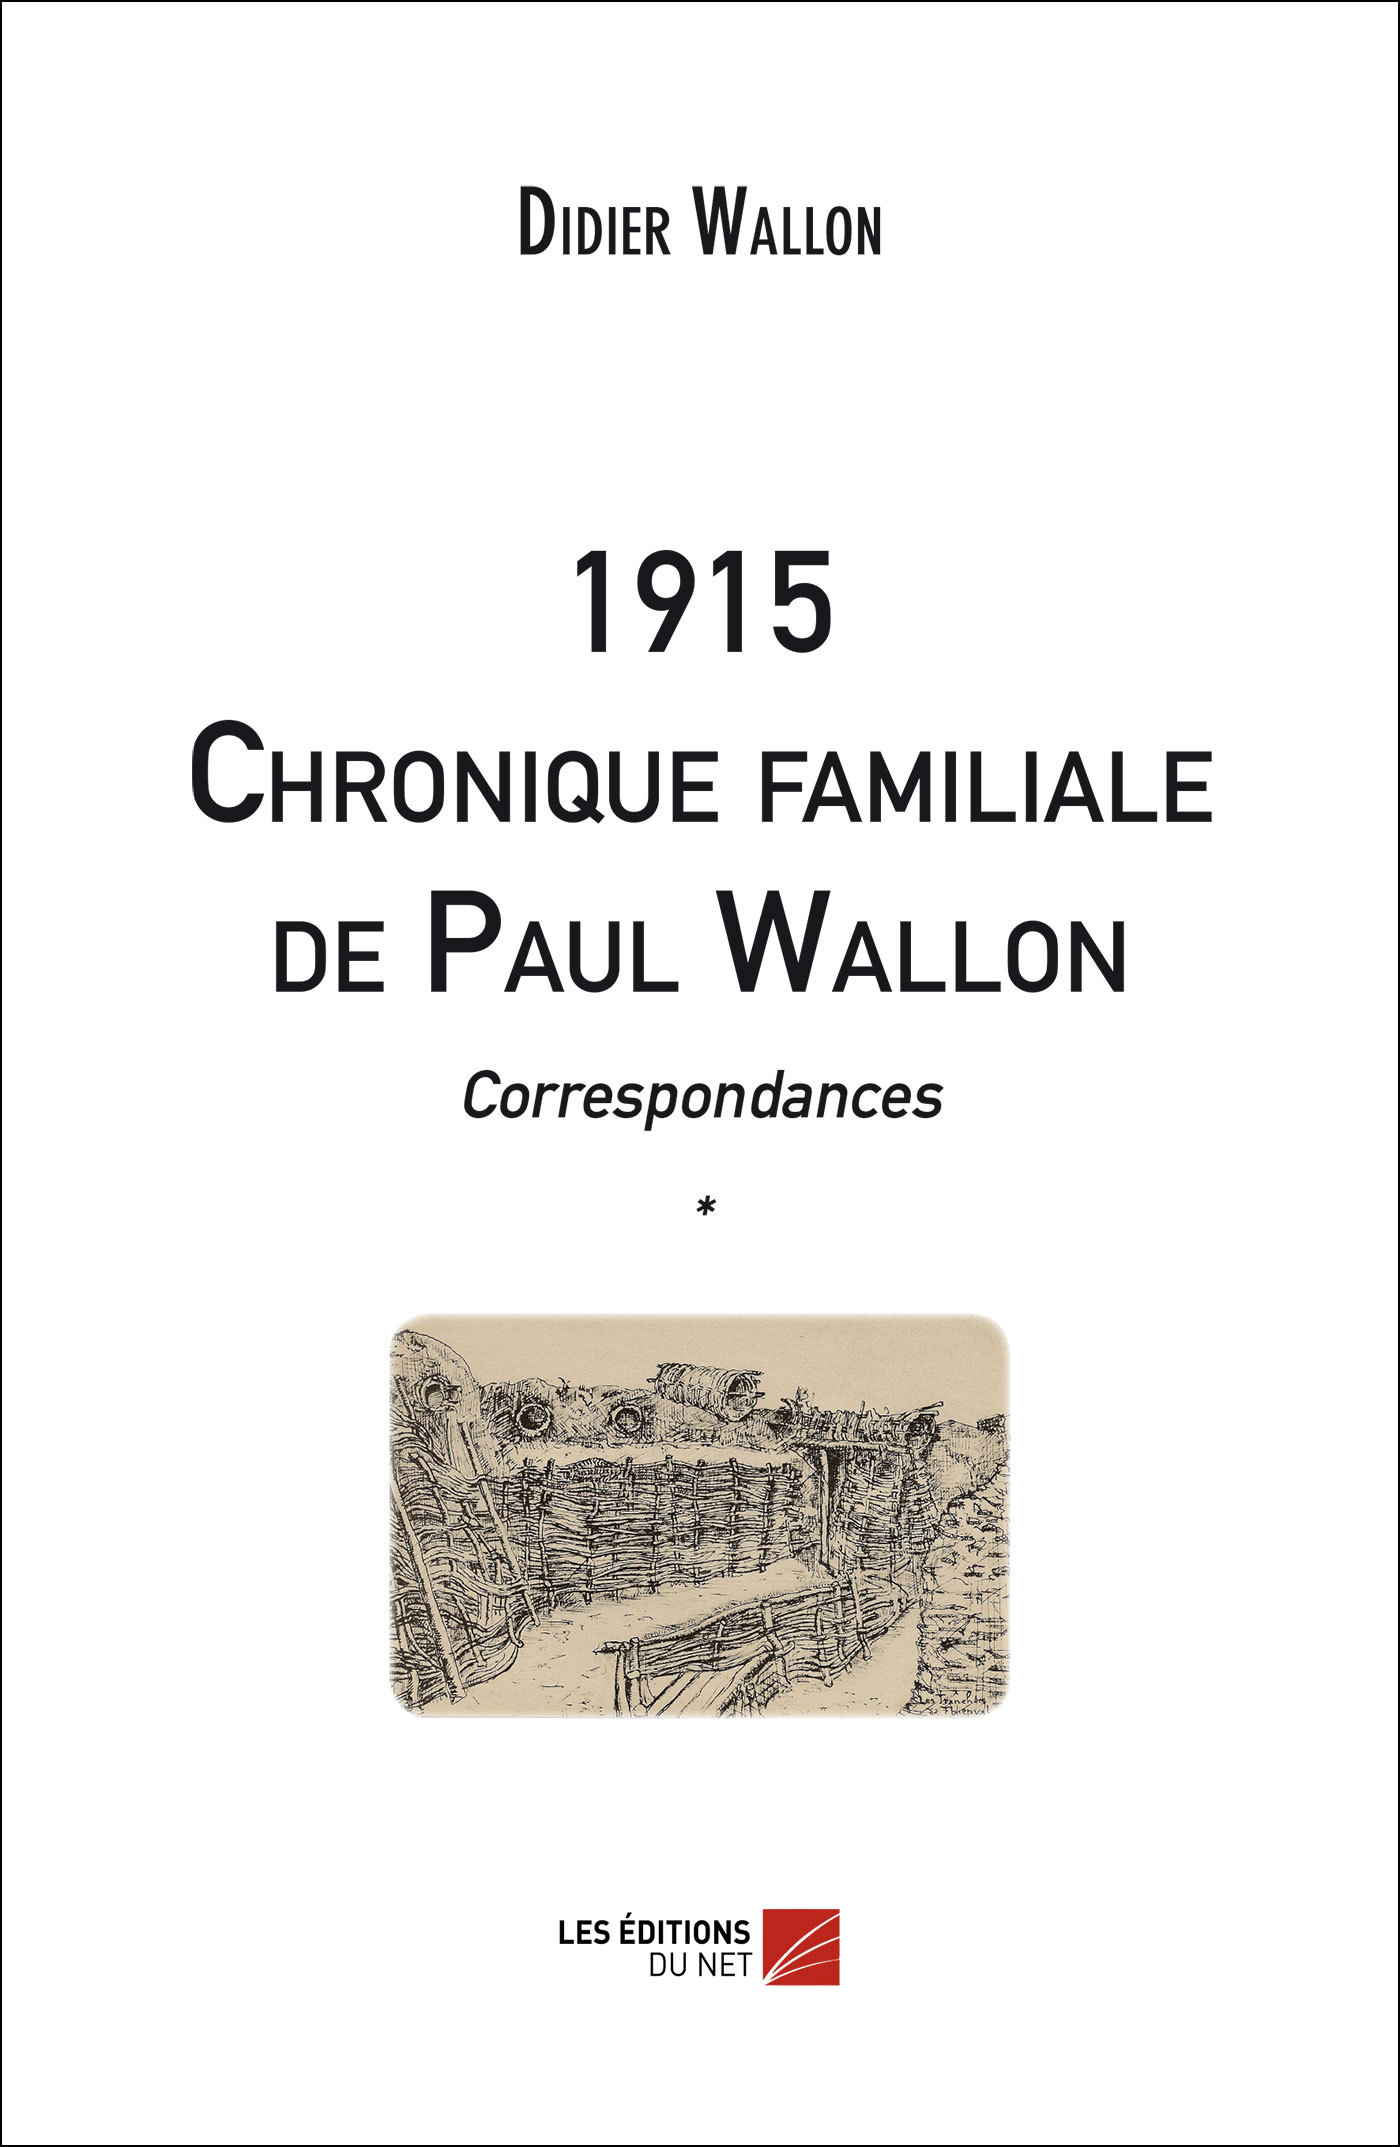 1915 CHRONIQUE FAMILIALE DE PAUL WALLON - CORRESPONDANCES *